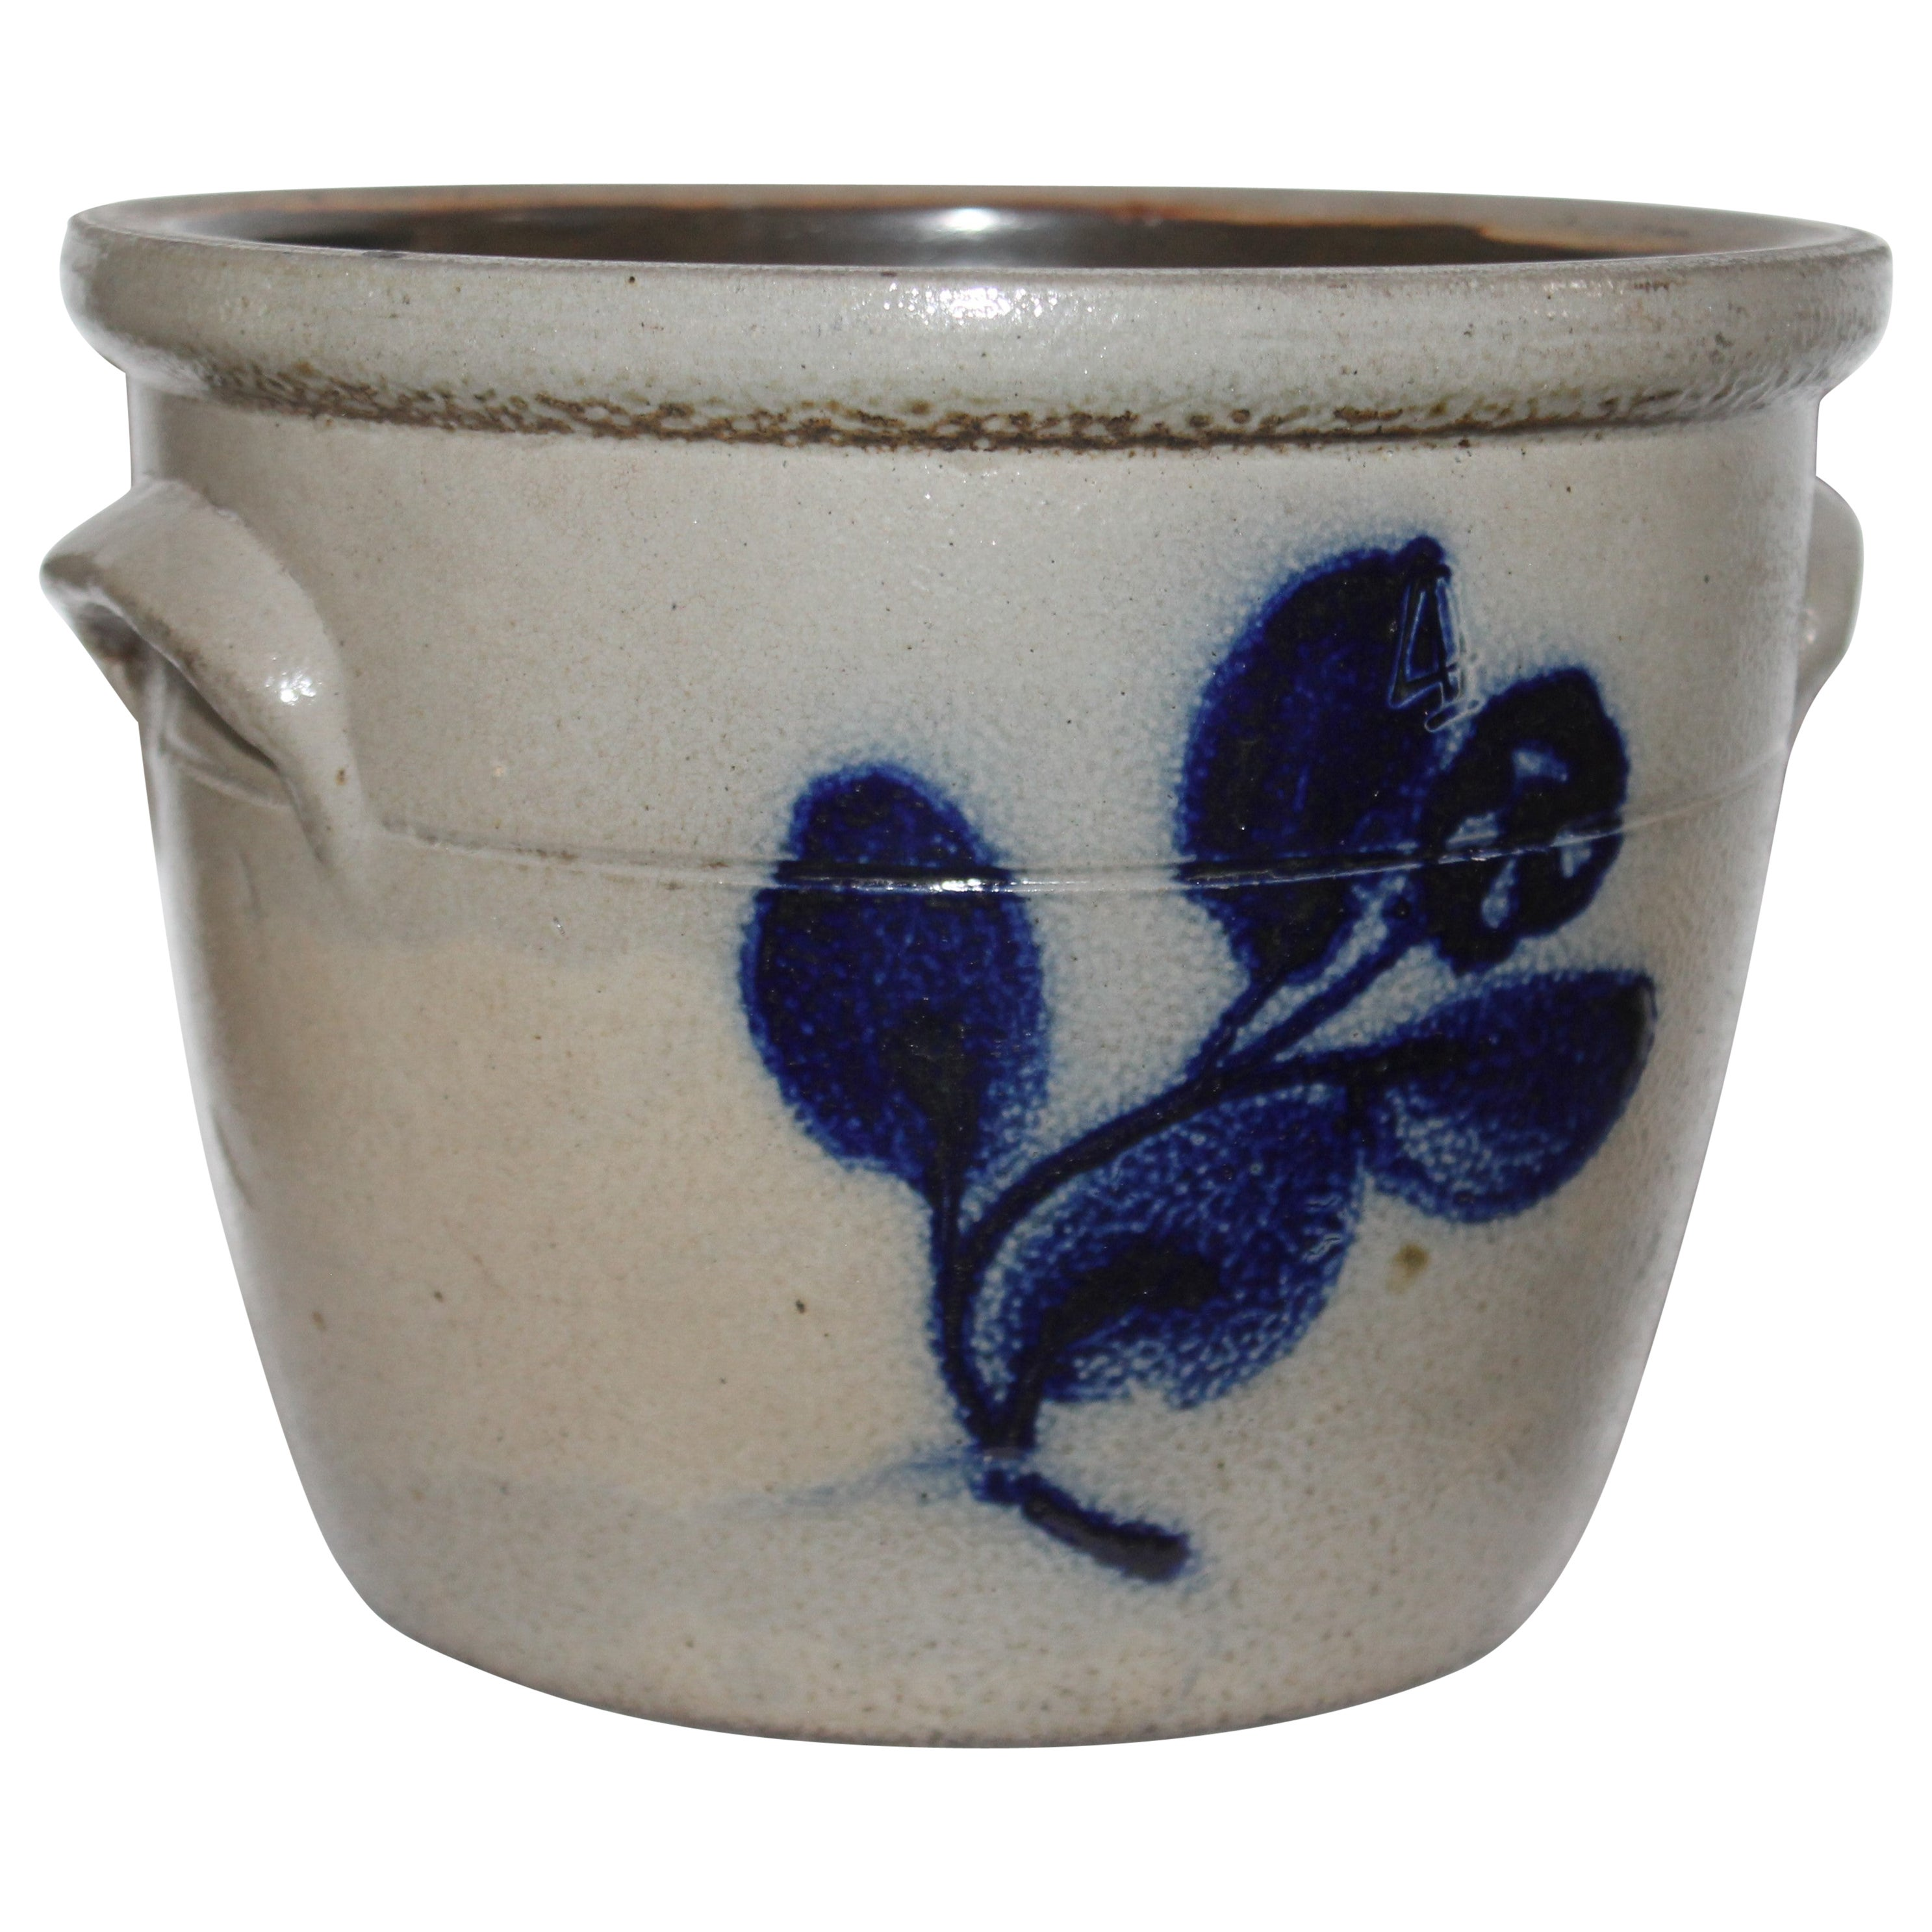 19th Century Decorated Stoneware Crock with Handles